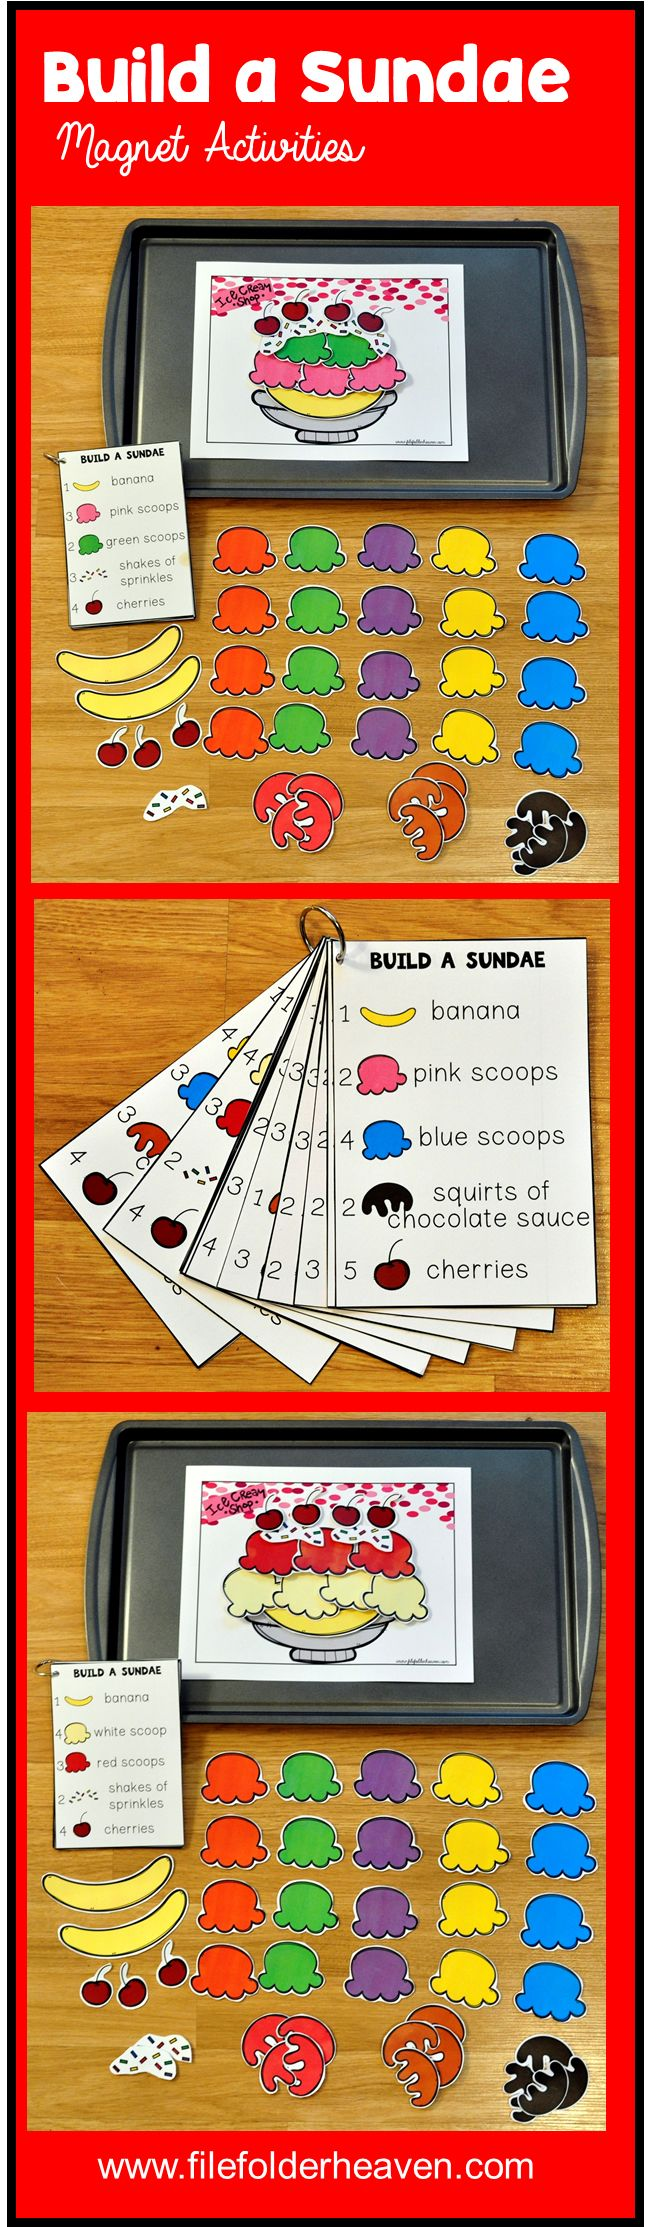 These Build a Sundae Center Activities can be set up as cookie sheet activities, a magnet center, or math center. This set includes 1 building mat, 14 build a sundae instruction cards, and lots of build a sundae building pieces (all in color).  In this activity, students watch the sundae pile up as they work on basic counting skills (numbers 1-5) and following directions.  Students will count out the correct number of bananas, scoops and toppings as indicated on the cards provided.